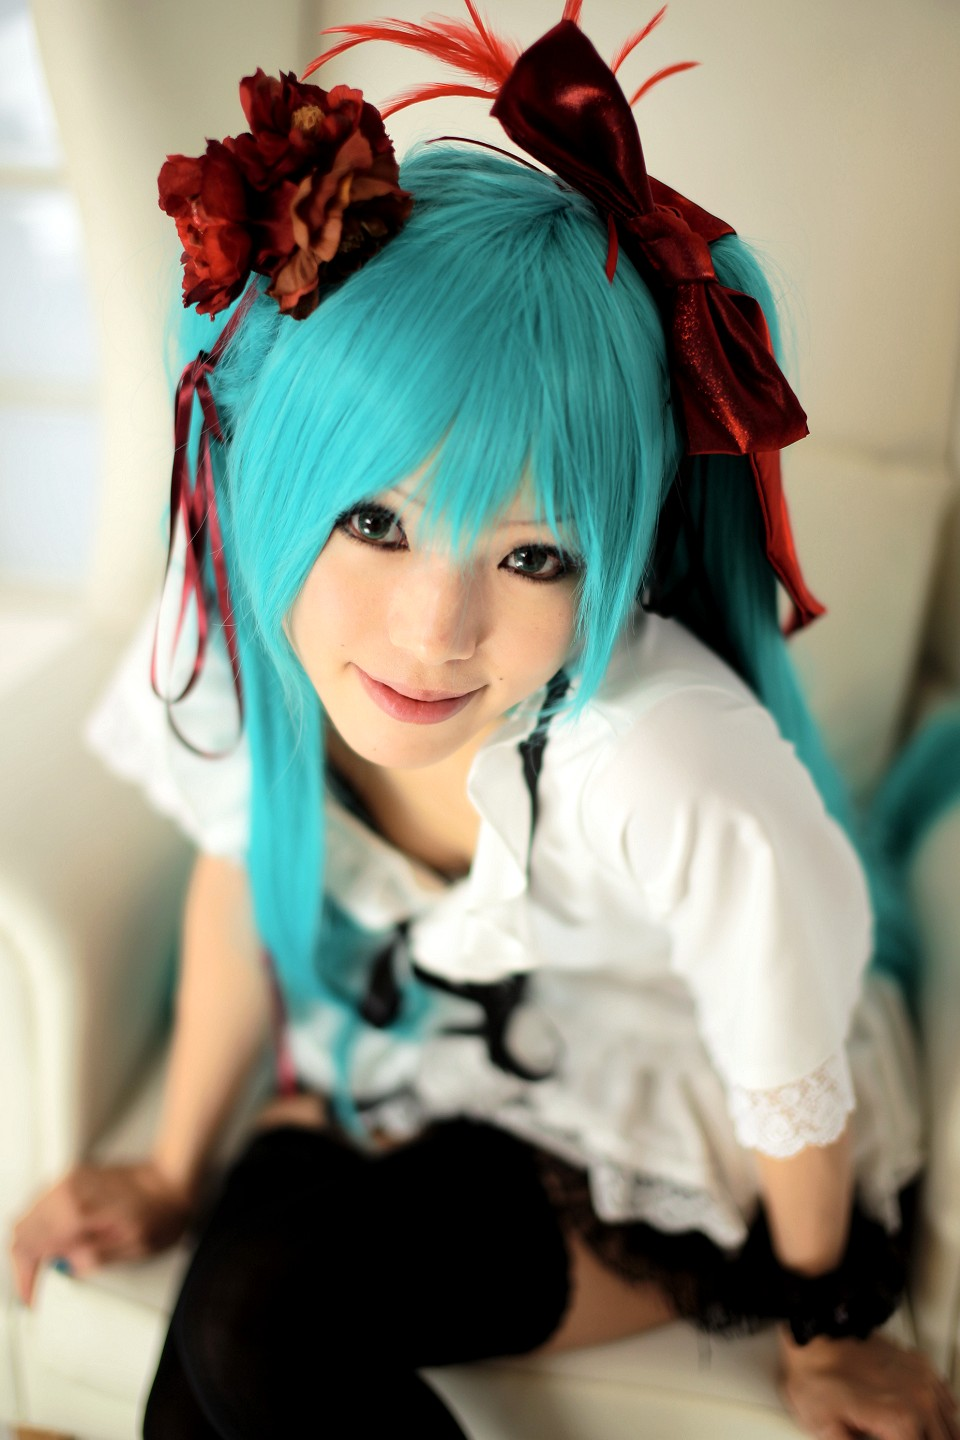 image Cosplay vocaloid hatsune miku spoiling her fans